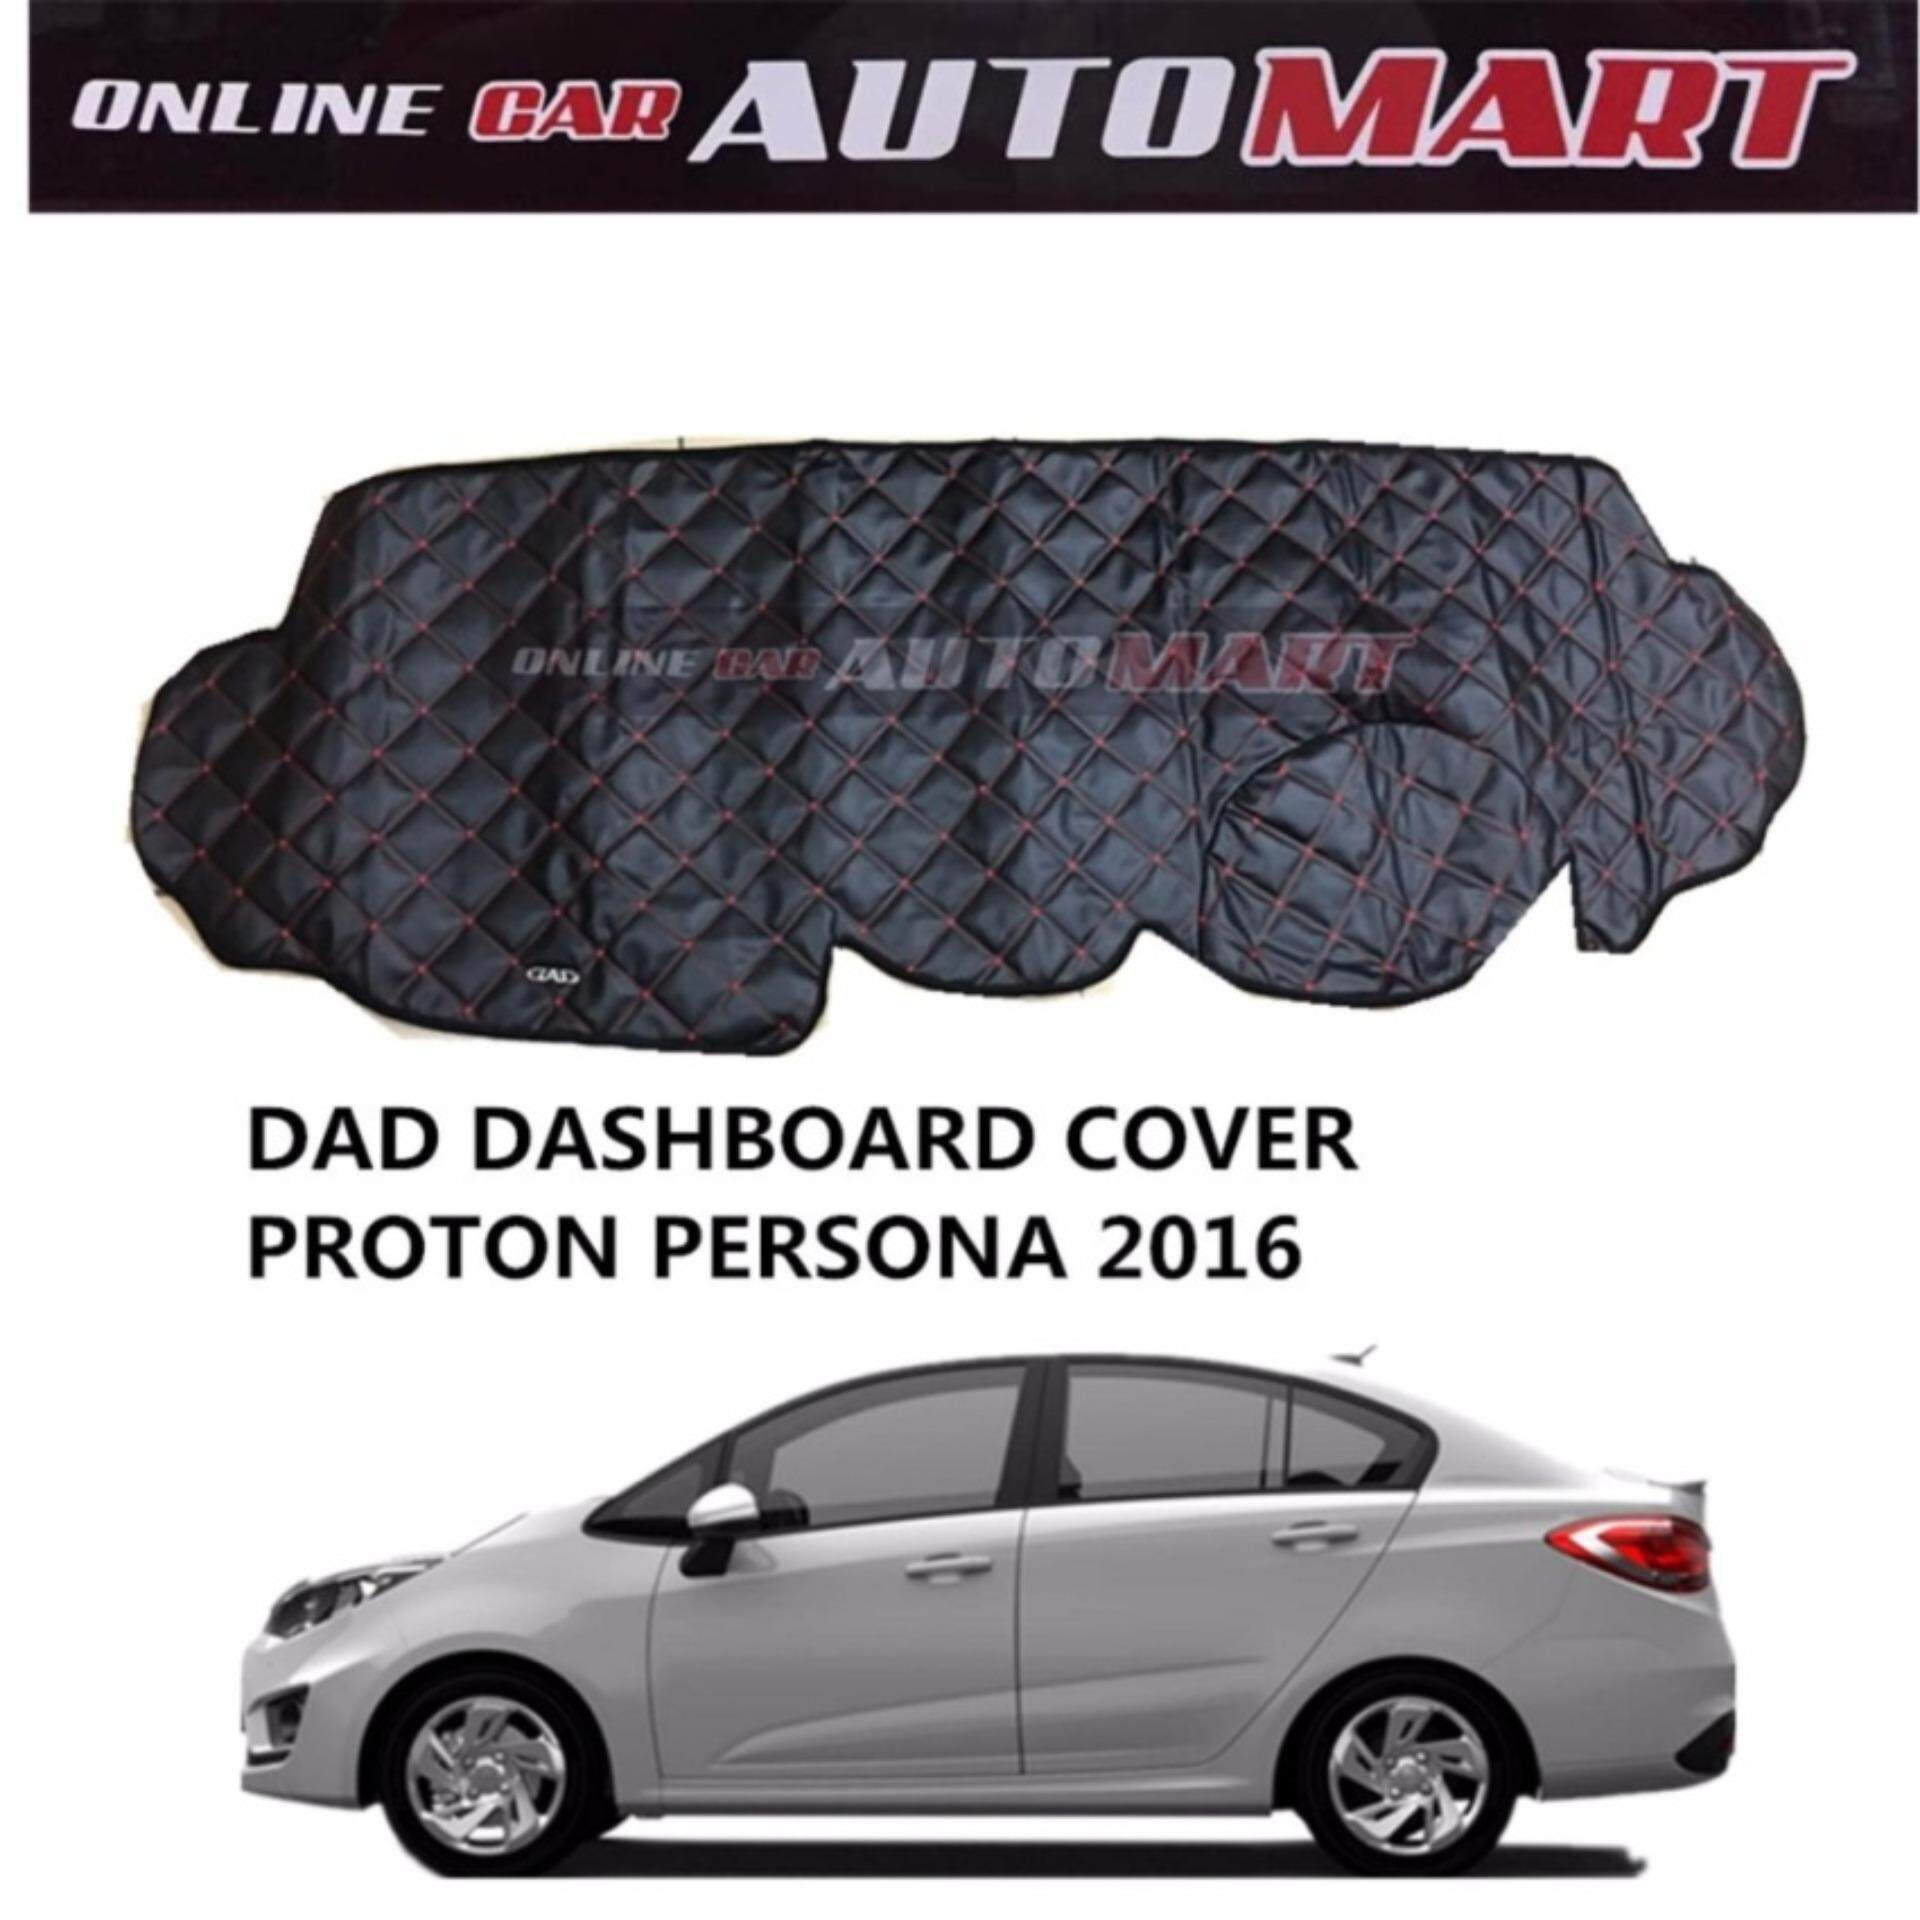 DAD Non Slip Dashboard Cover - Proton Persona Yr 2016